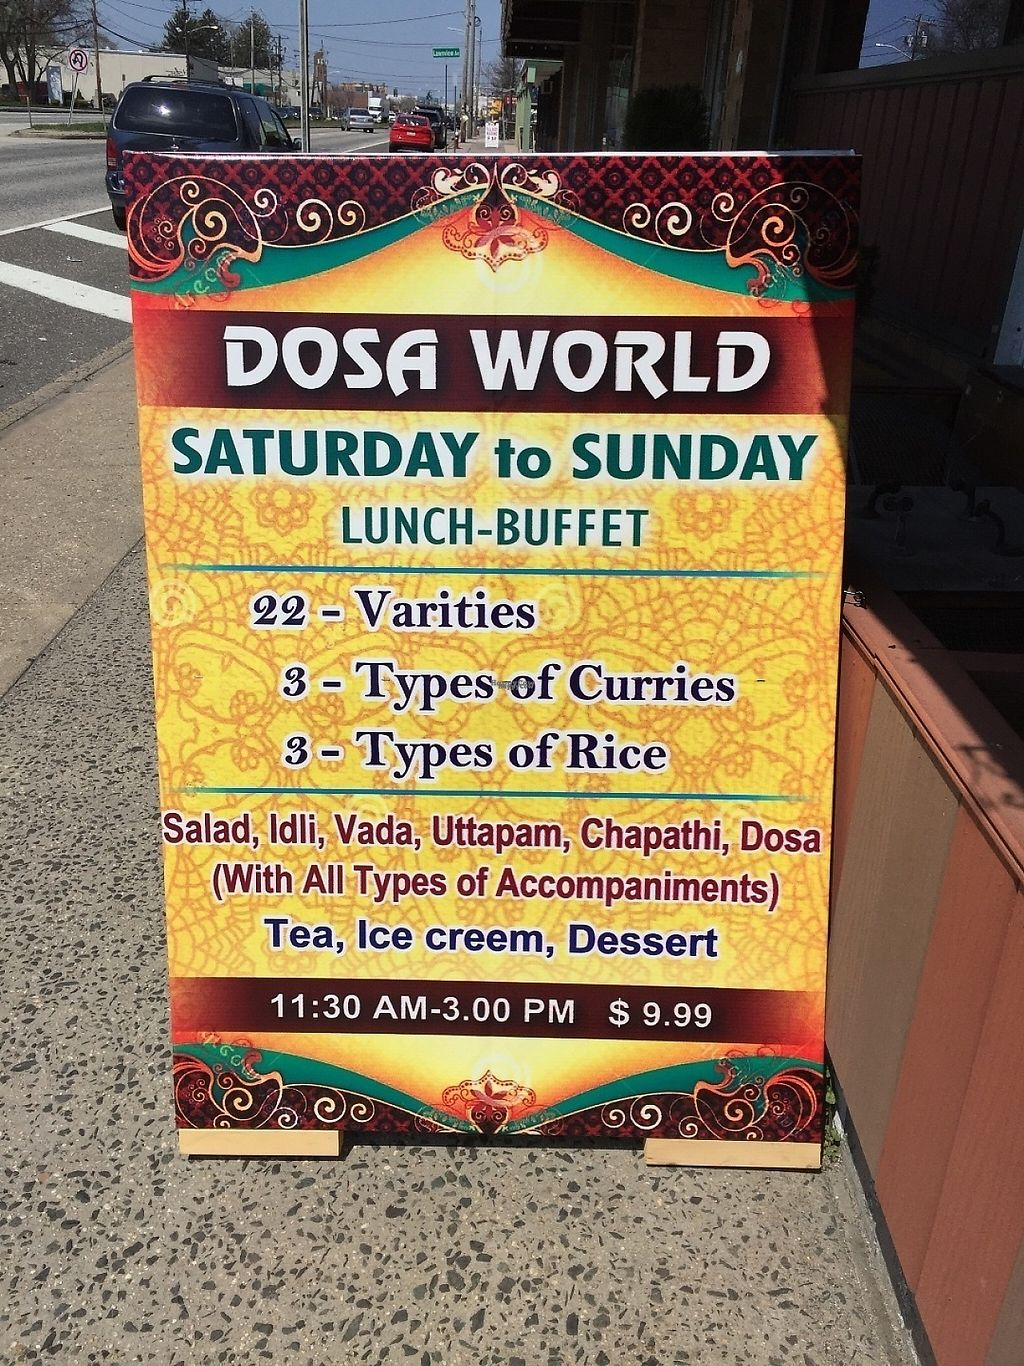 """Photo of Dosa World  by <a href=""""/members/profile/suzagord"""">suzagord</a> <br/> There are many more good items for vegans on the menu then at the buffet, I would choose the menu  <br/> April 16, 2017  - <a href='/contact/abuse/image/90559/249120'>Report</a>"""